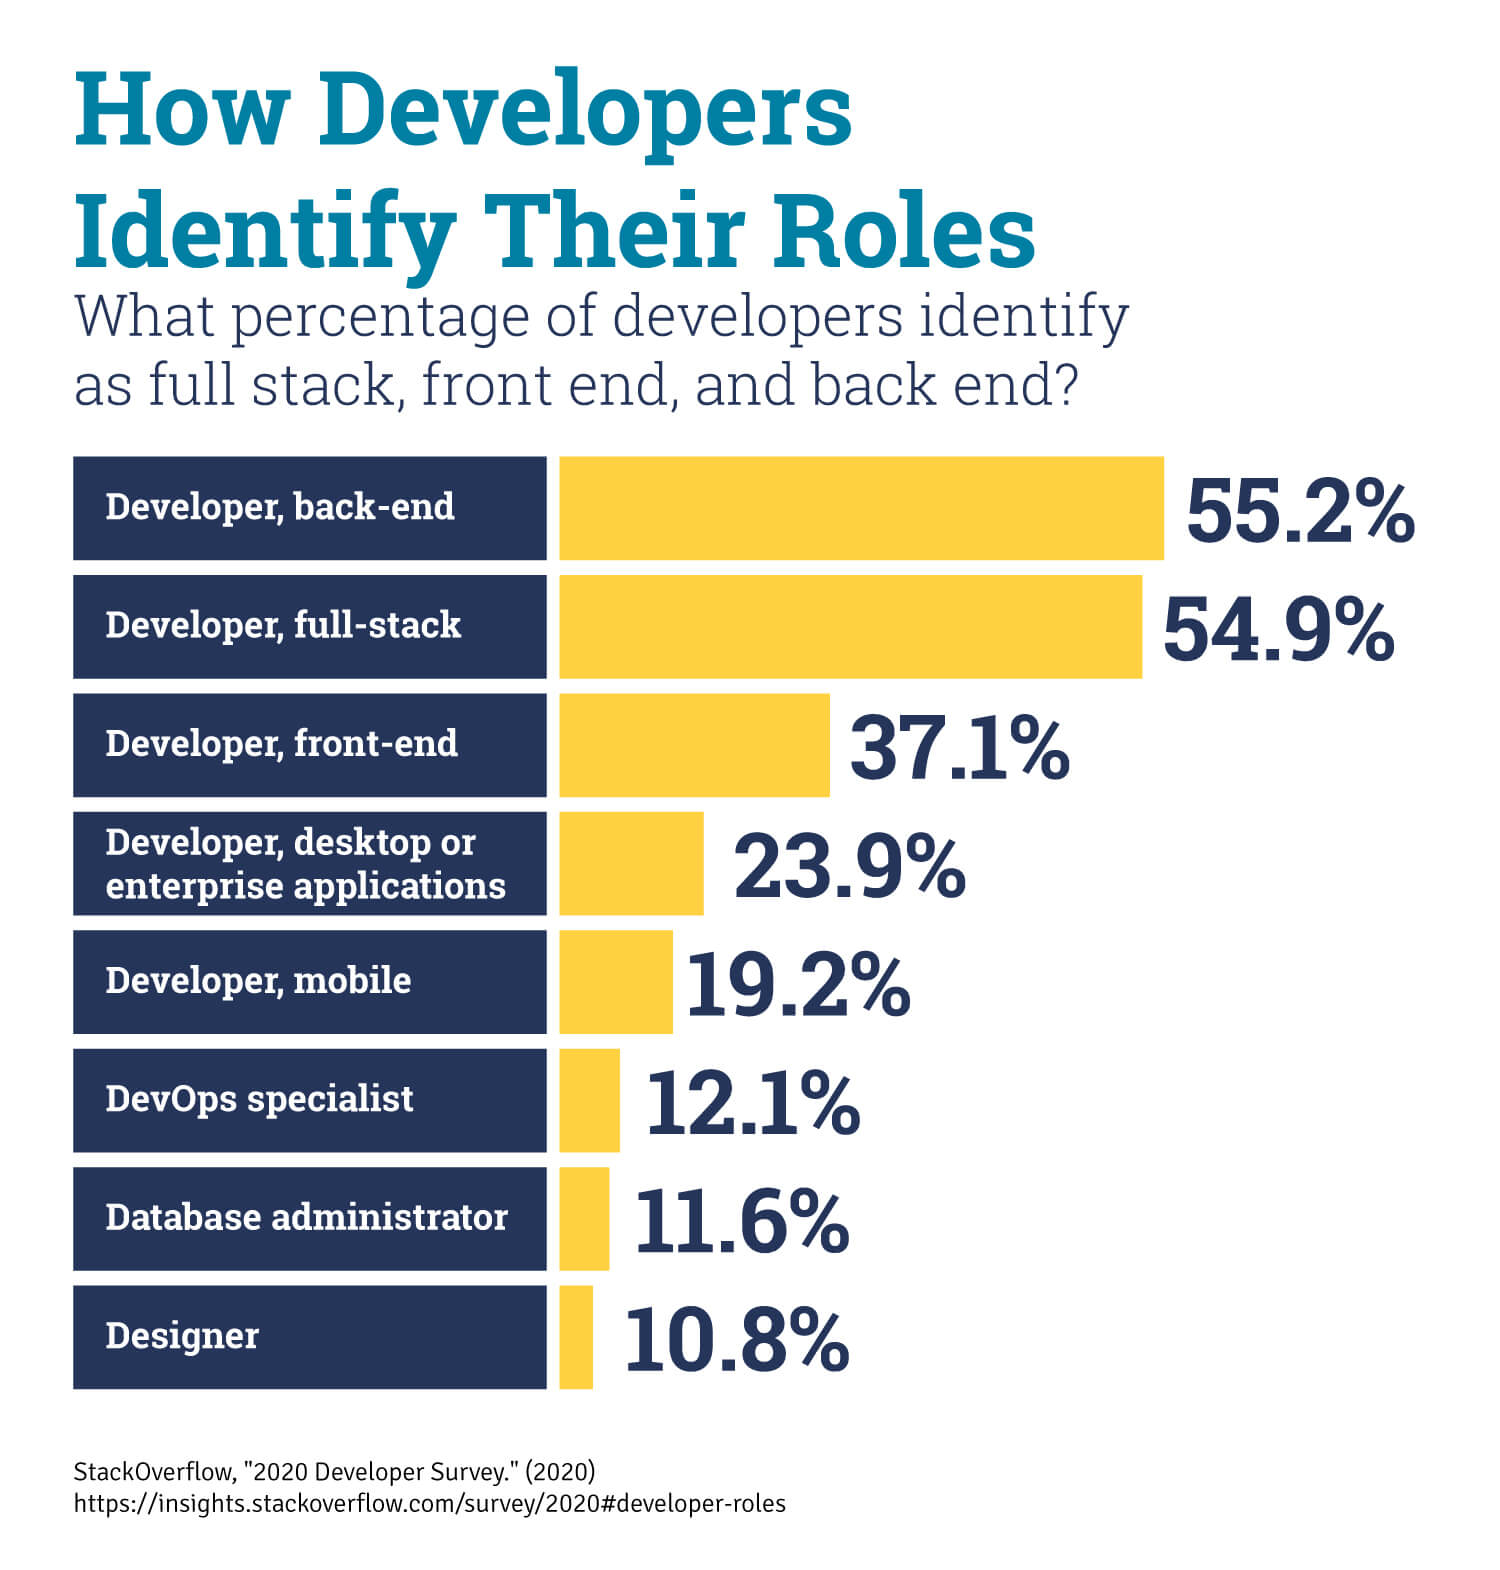 What percentage of developers are full stack developers